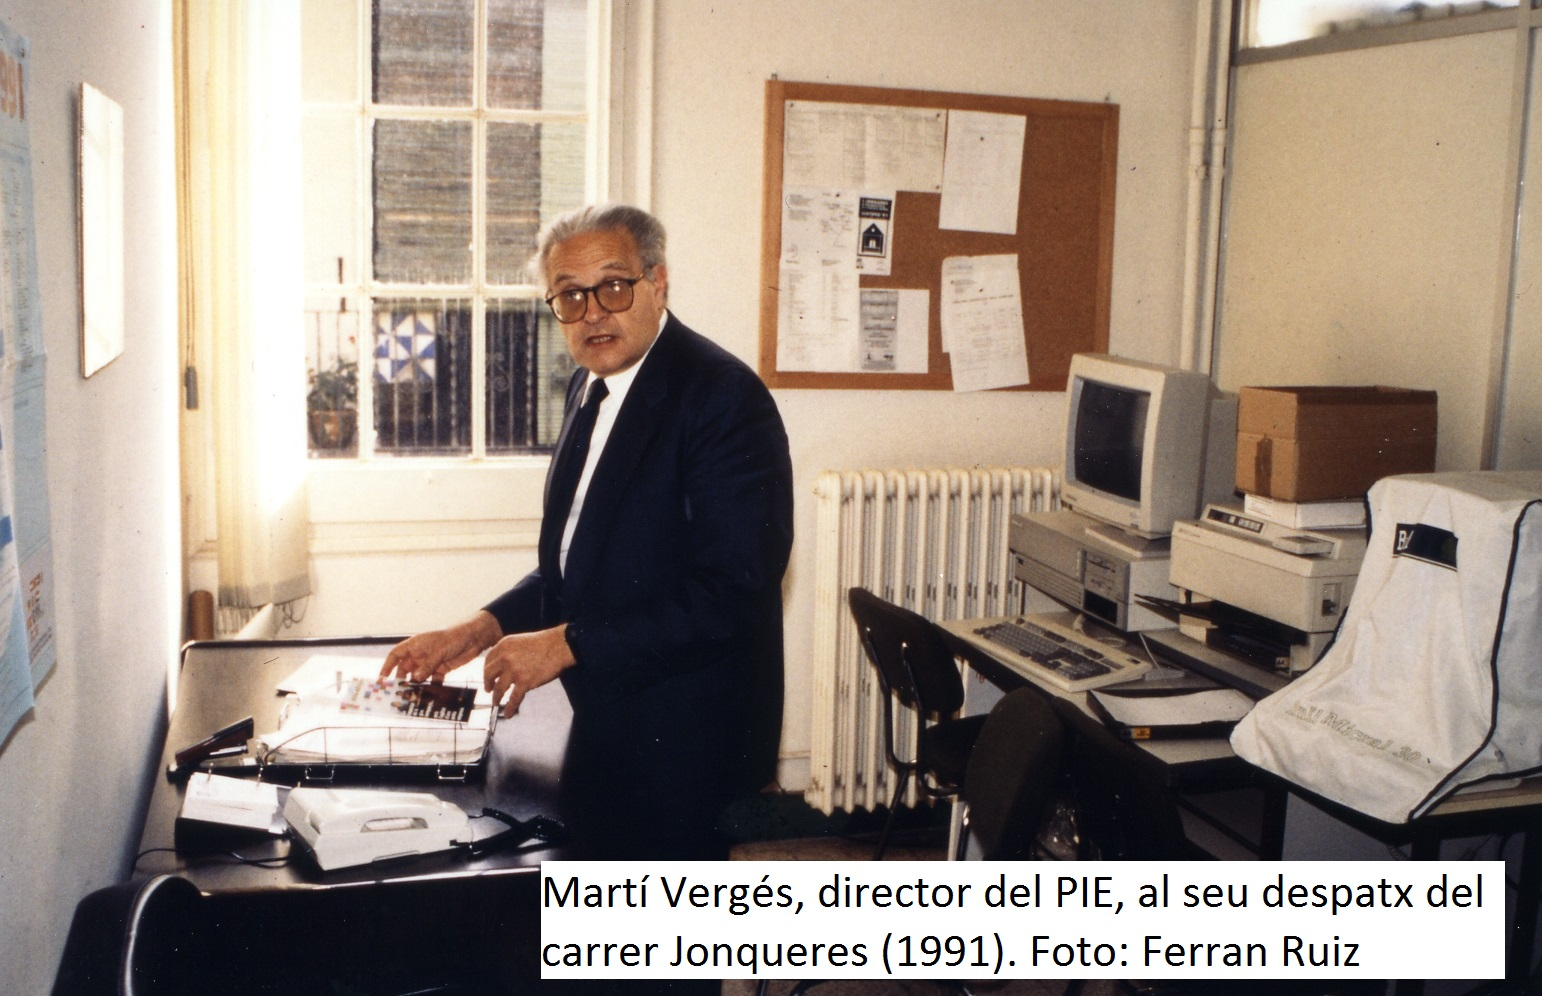 Marti Verges direcor del PIE 1991